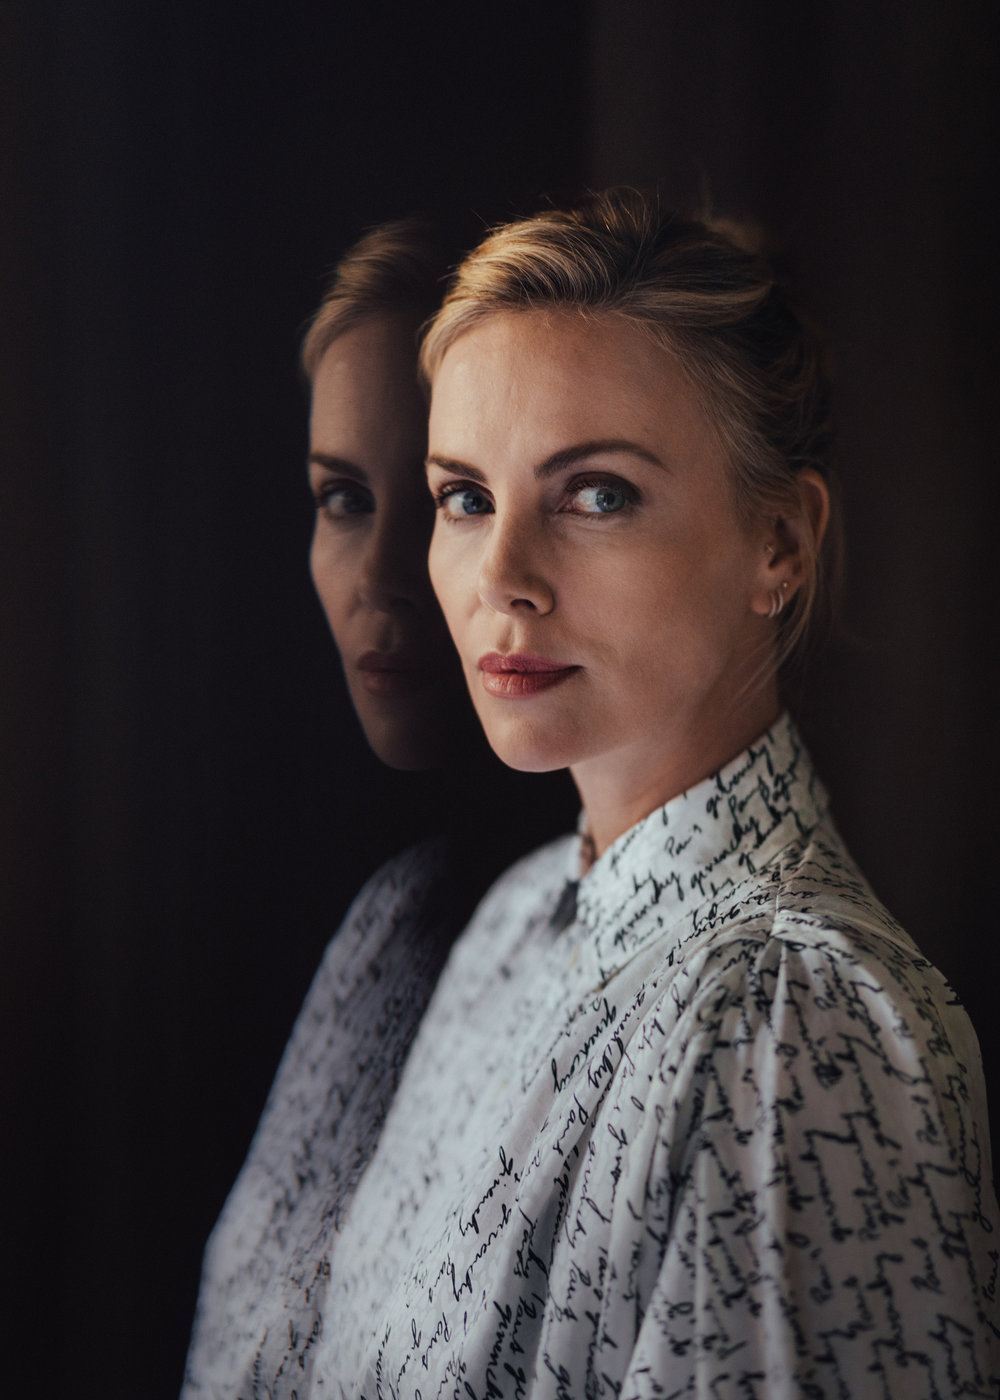 Charlize Theron for The New York Times